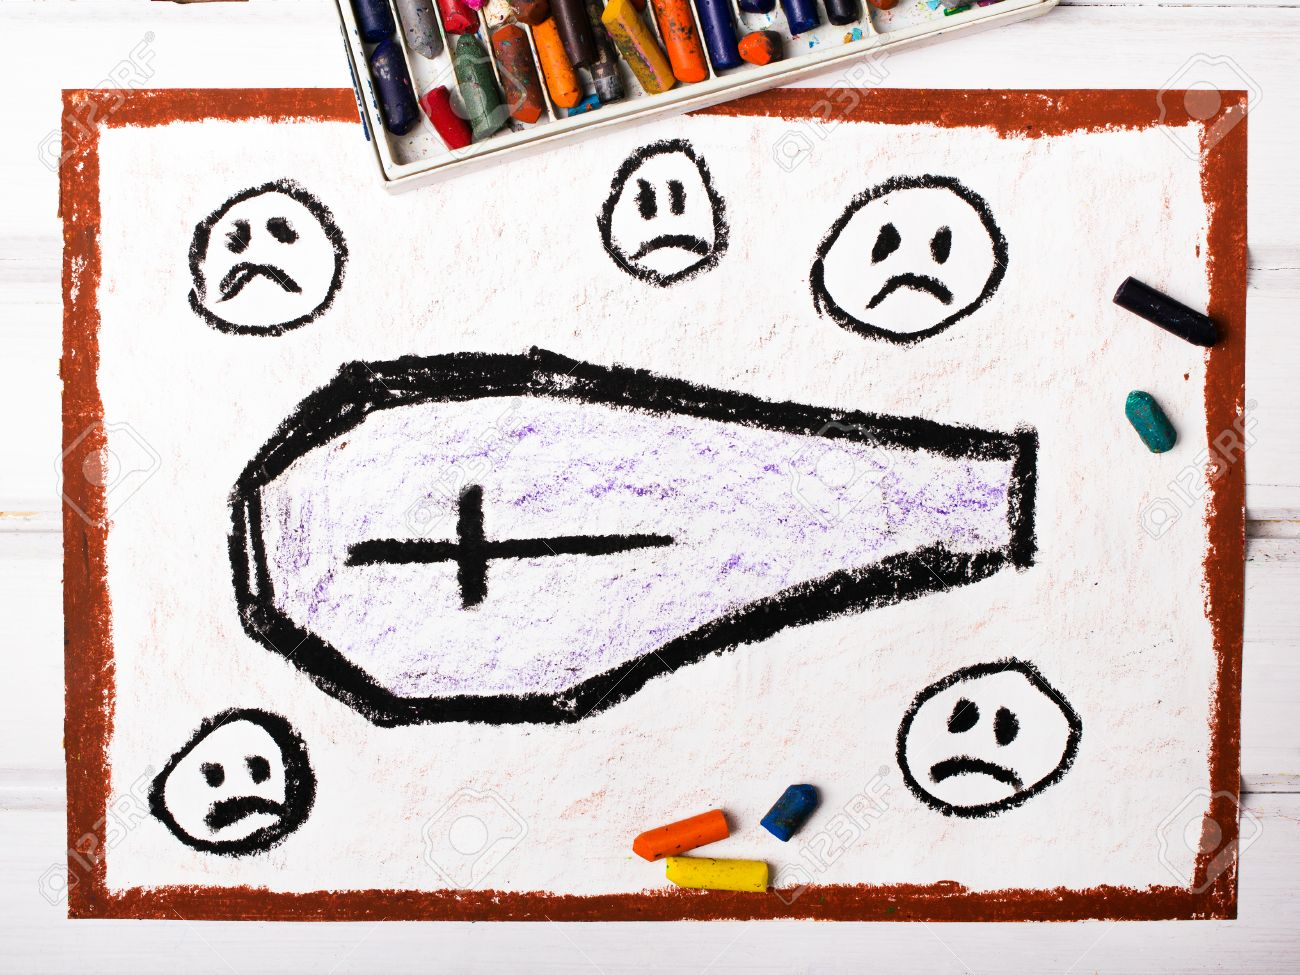 1300x975 Drawing Coffin Surrounded By Sad Faces Stock Photo, Picture